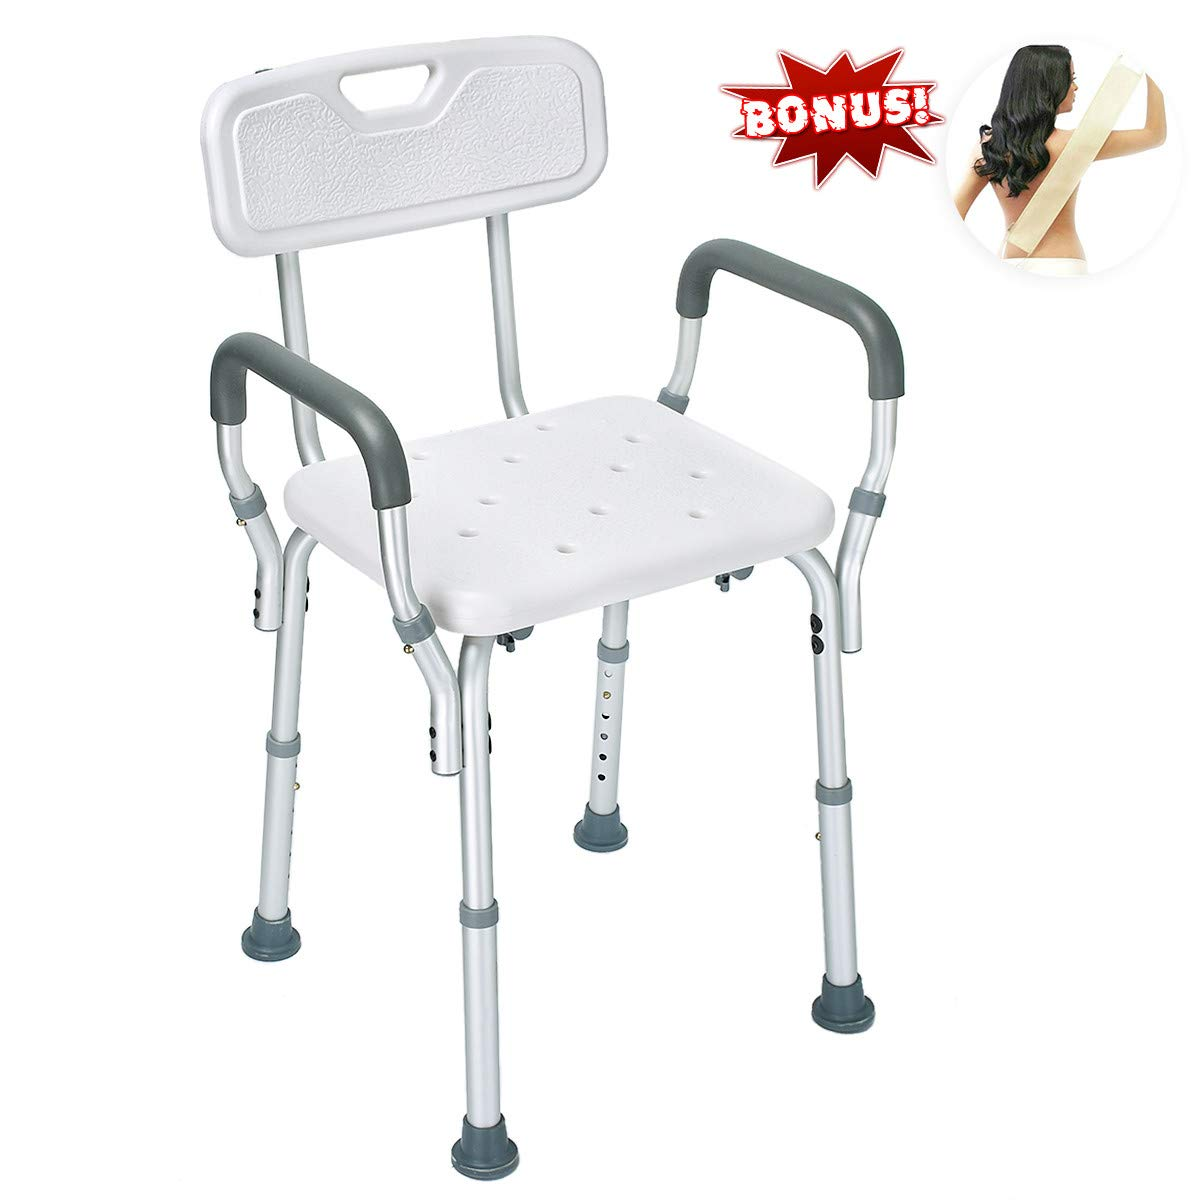 Health Line Shower Chair Bath Seat Bench with Removable Back &Arms, Tool-Free Assembly, Adjustable Height, w/Non-Slip Feet & Bonus Loofah Back Scrubber 61IUt2BQh0hL